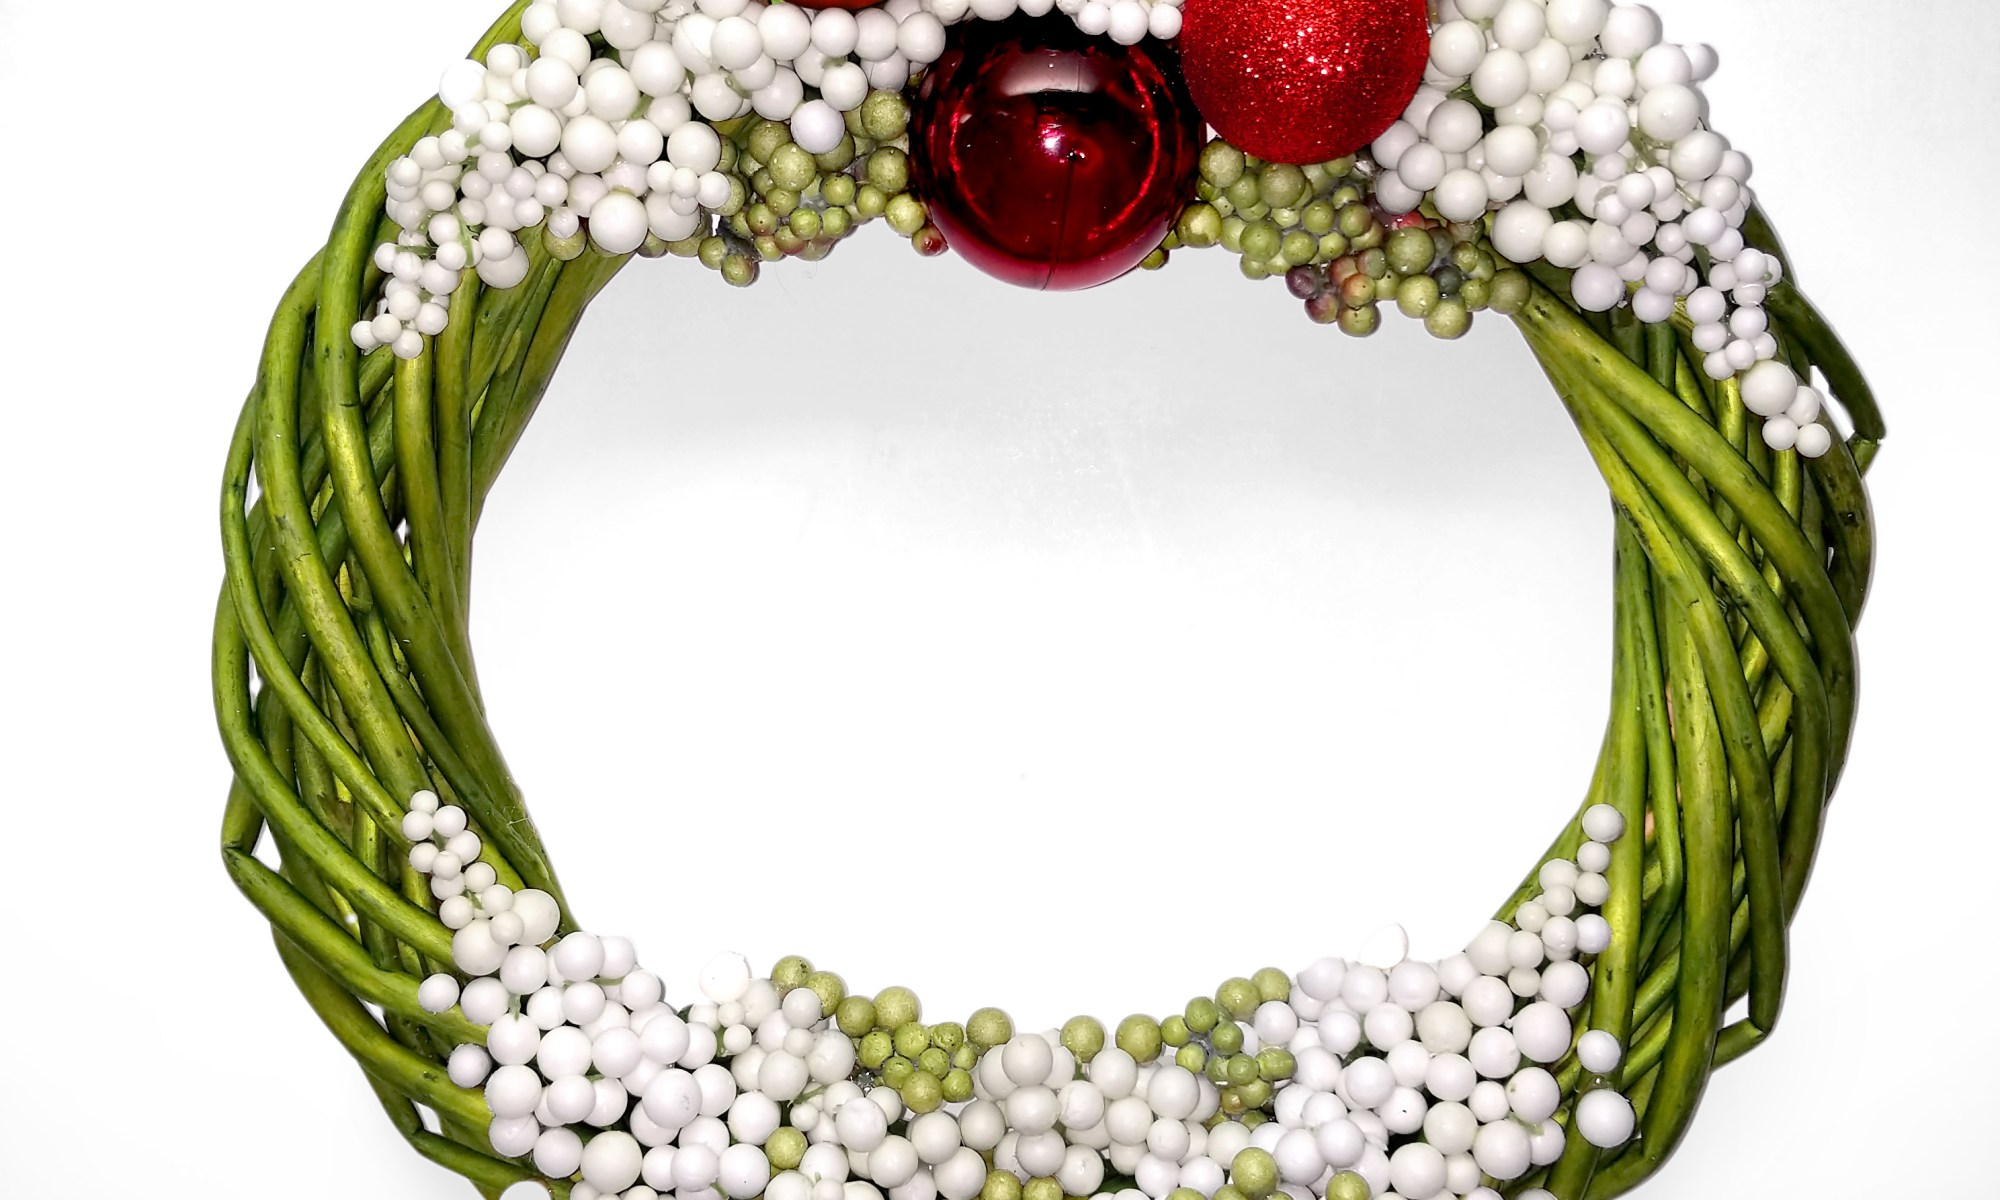 Christmas or Holiday wreath